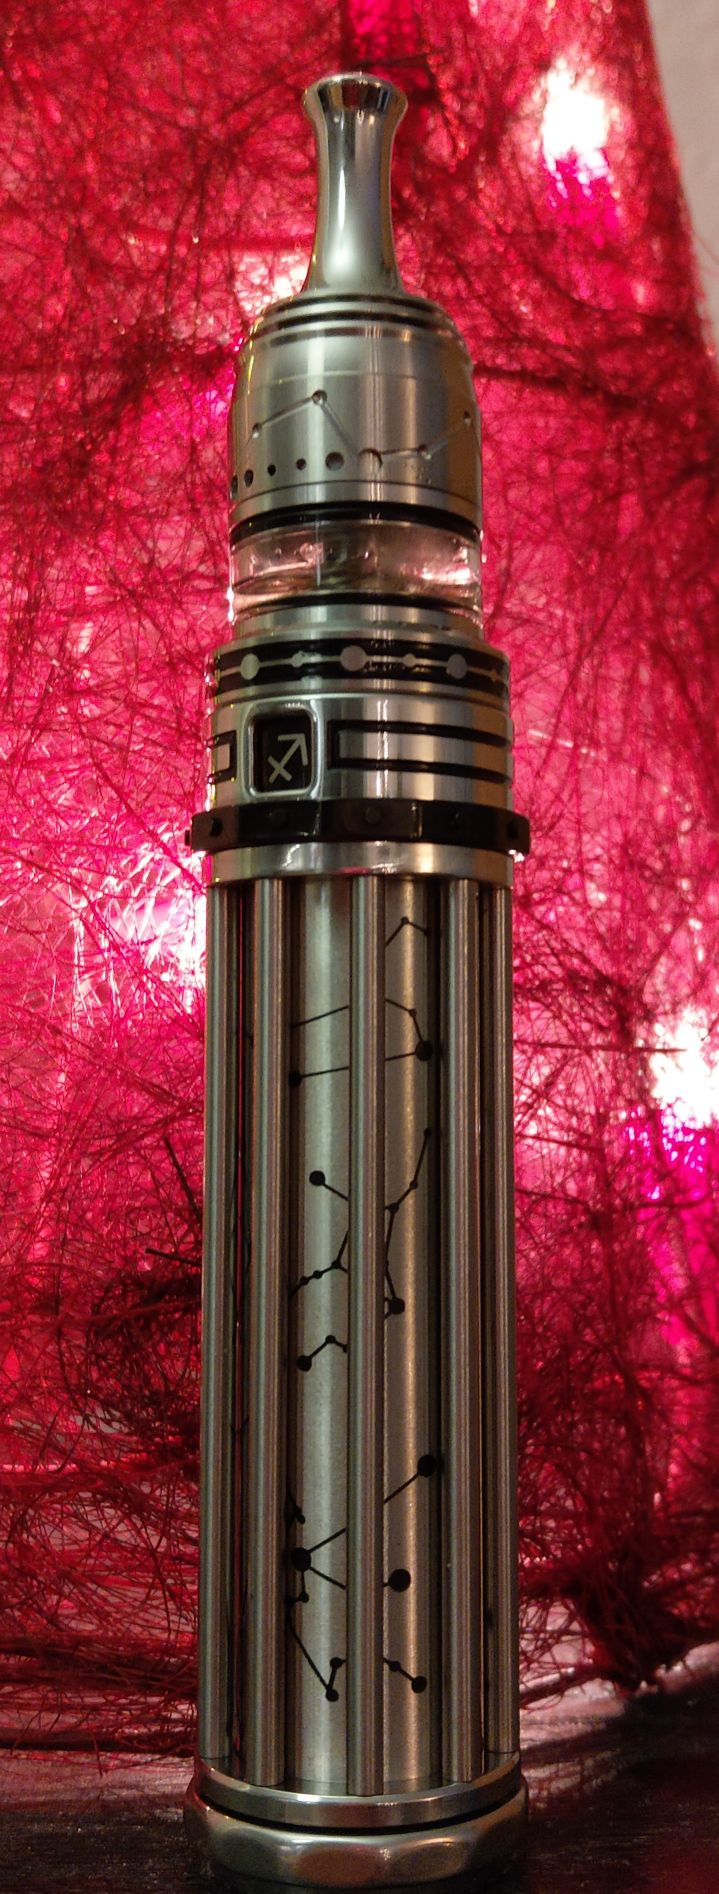 Innokin Itaste 134 mx-z mit Vapefly Galaxies